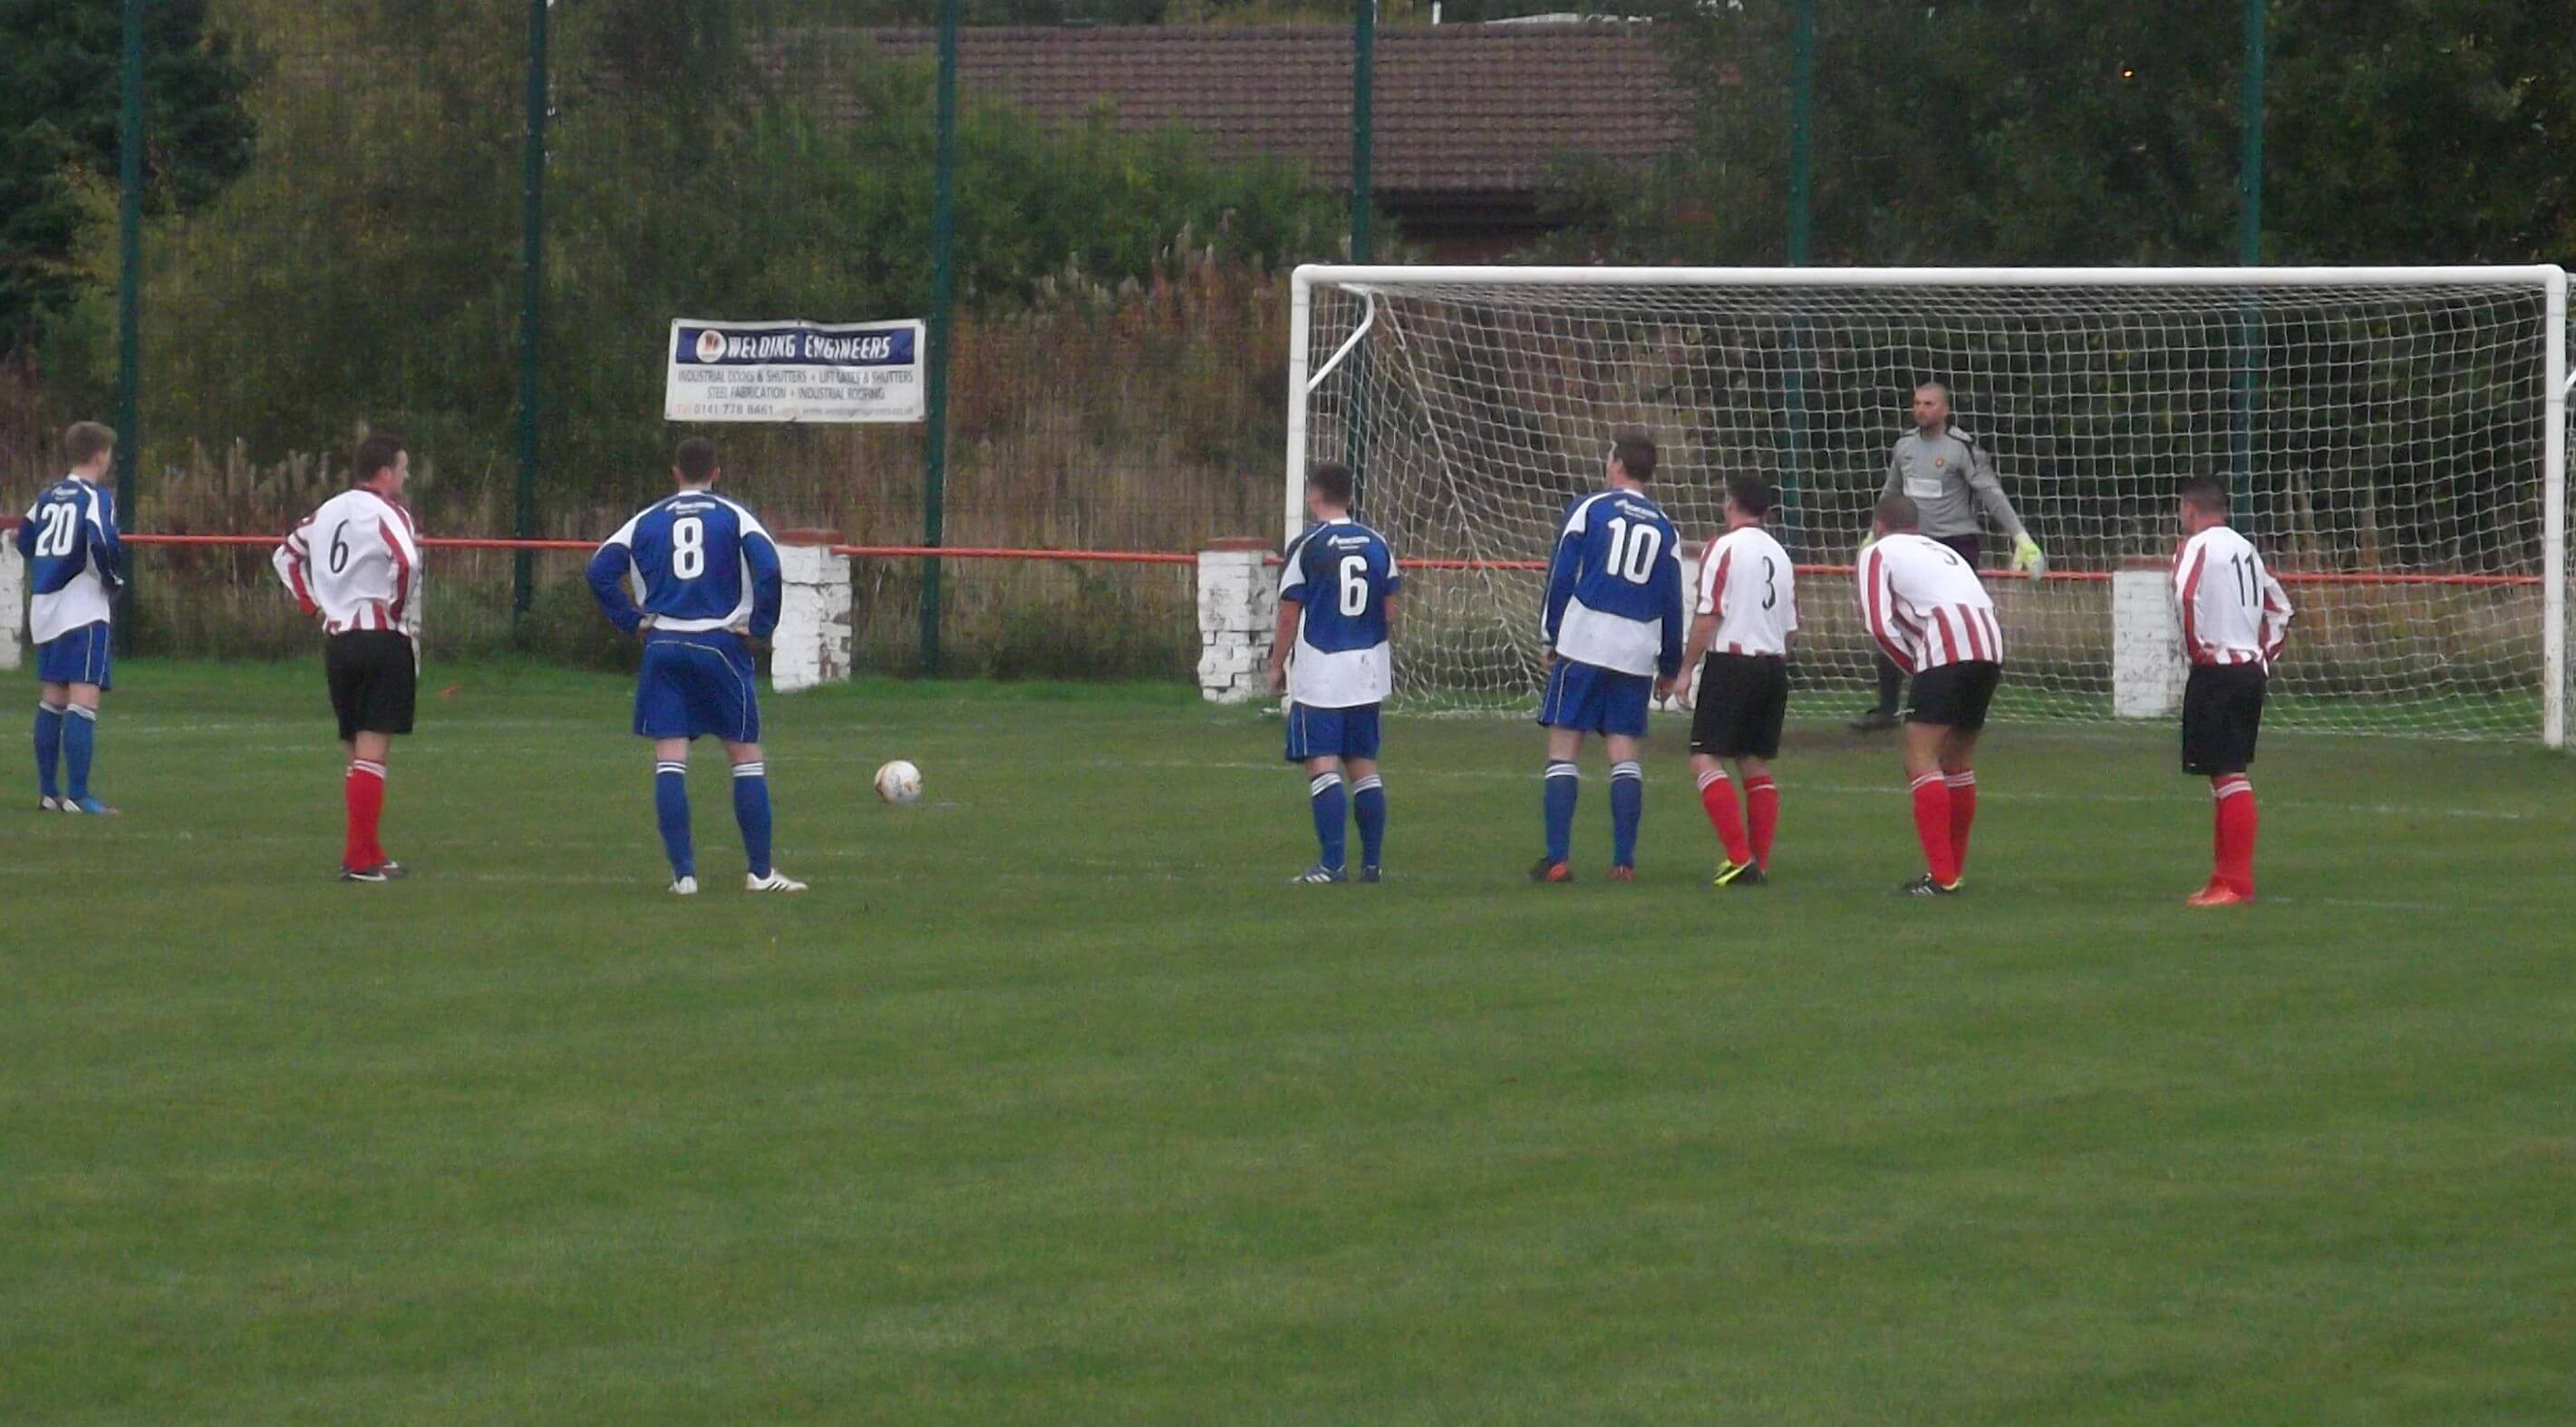 Kirriemuir penalty in first half